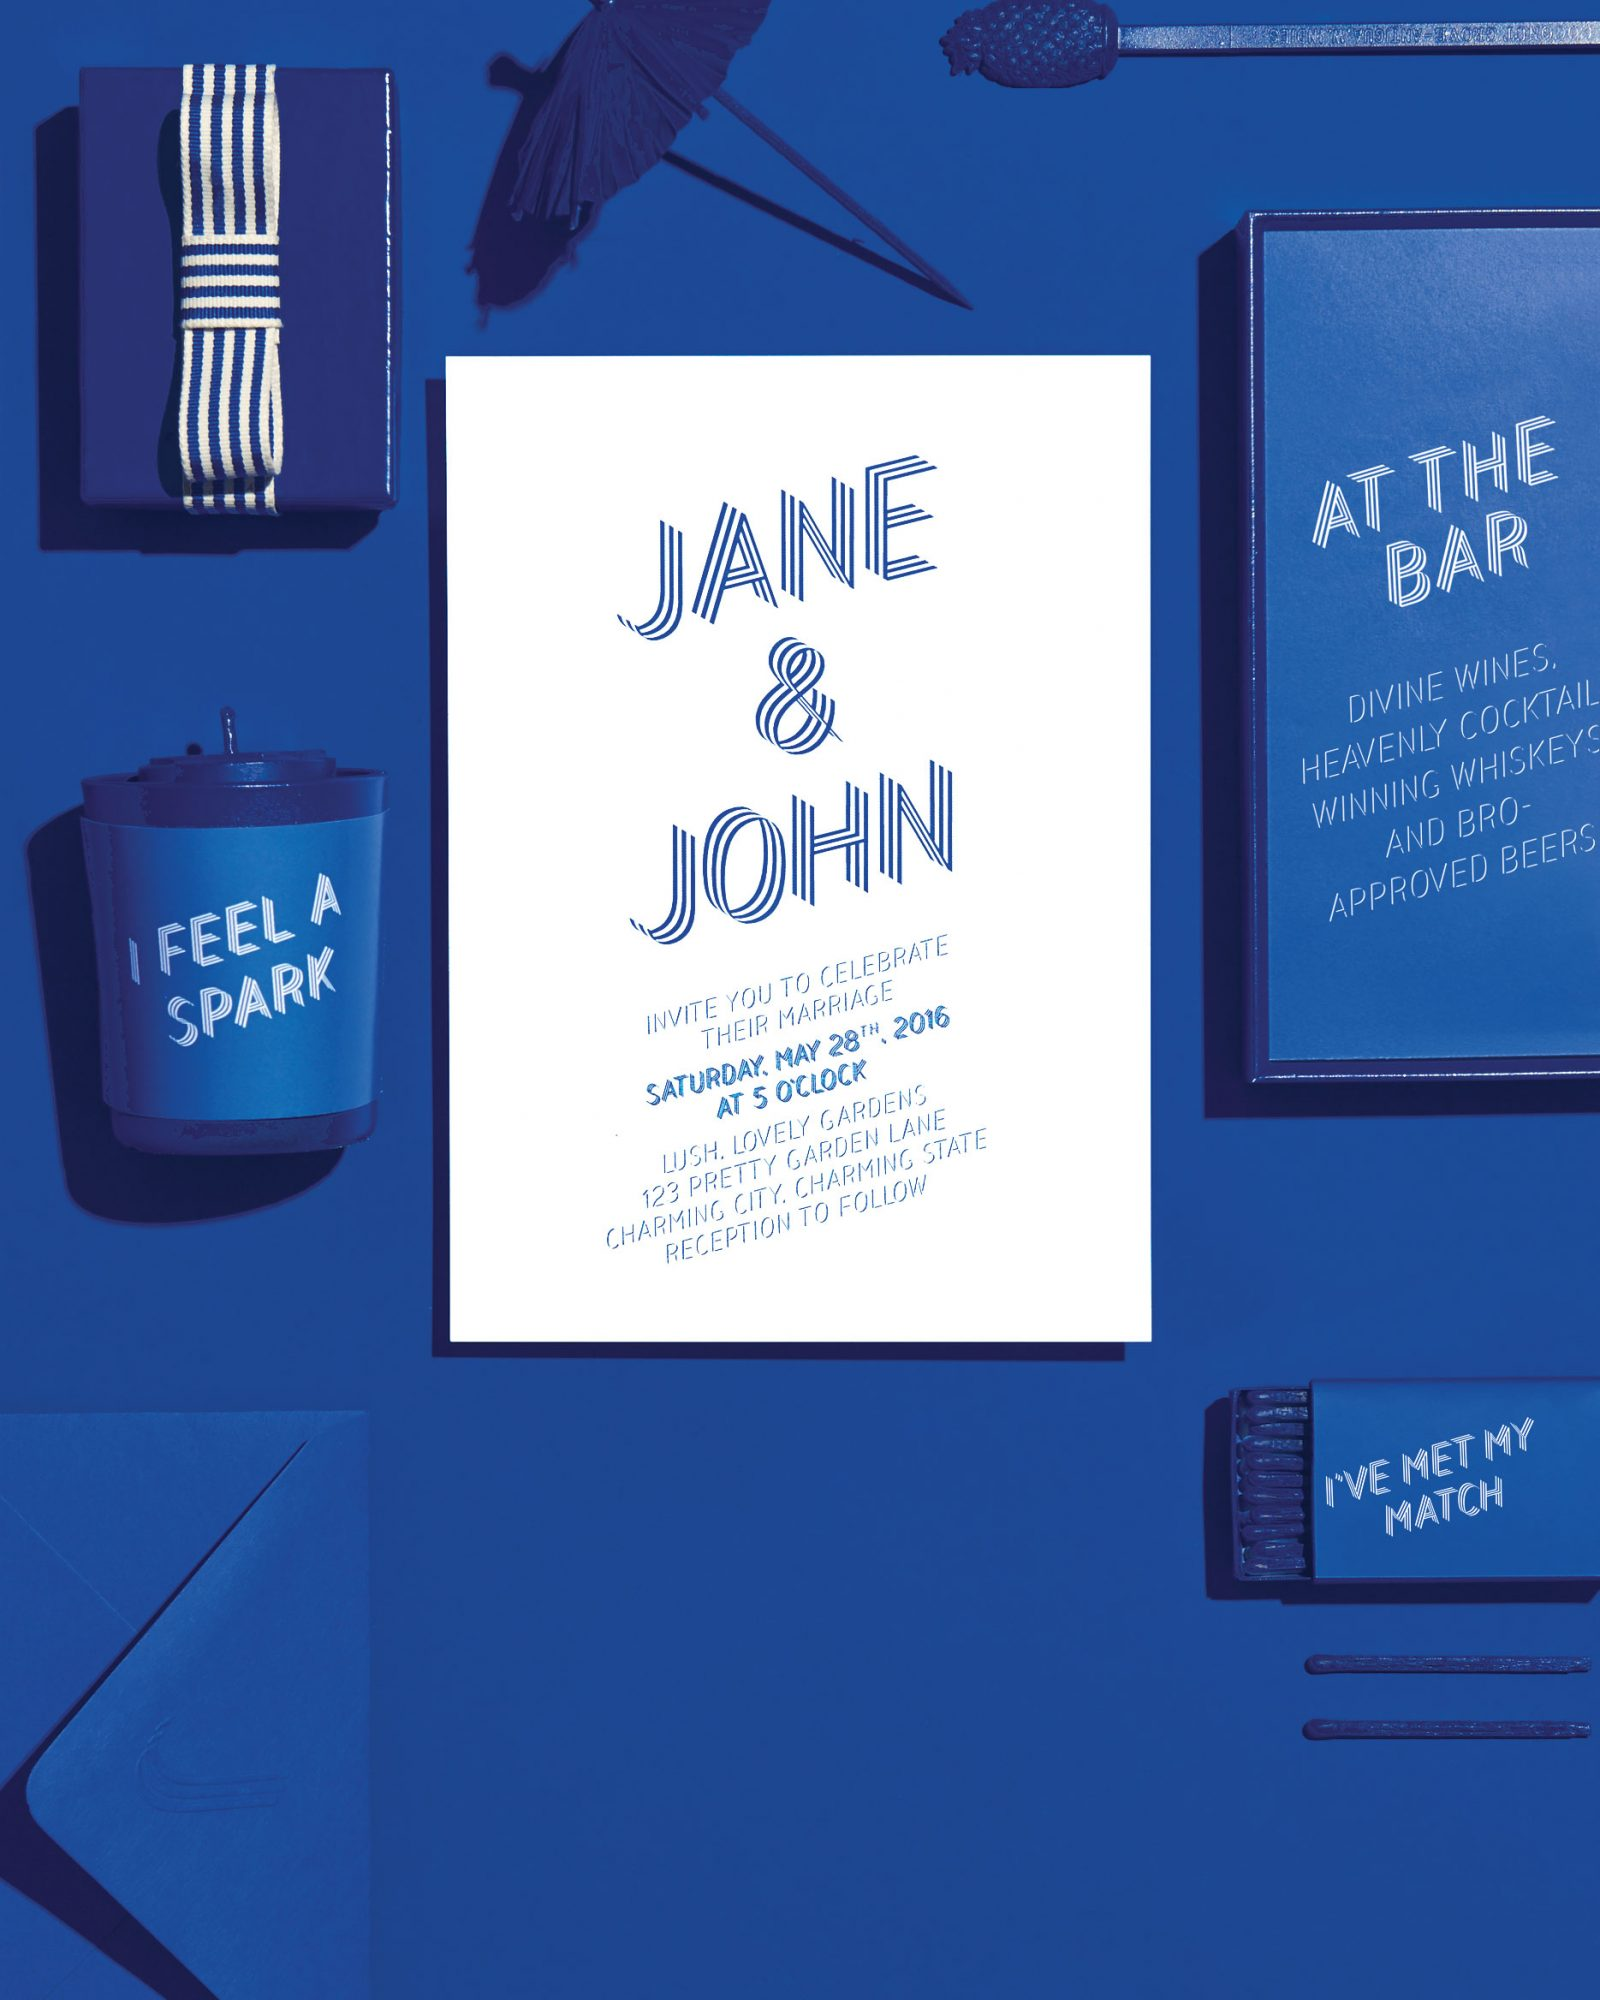 mstationery-blue-221-d112669-comp.jpg